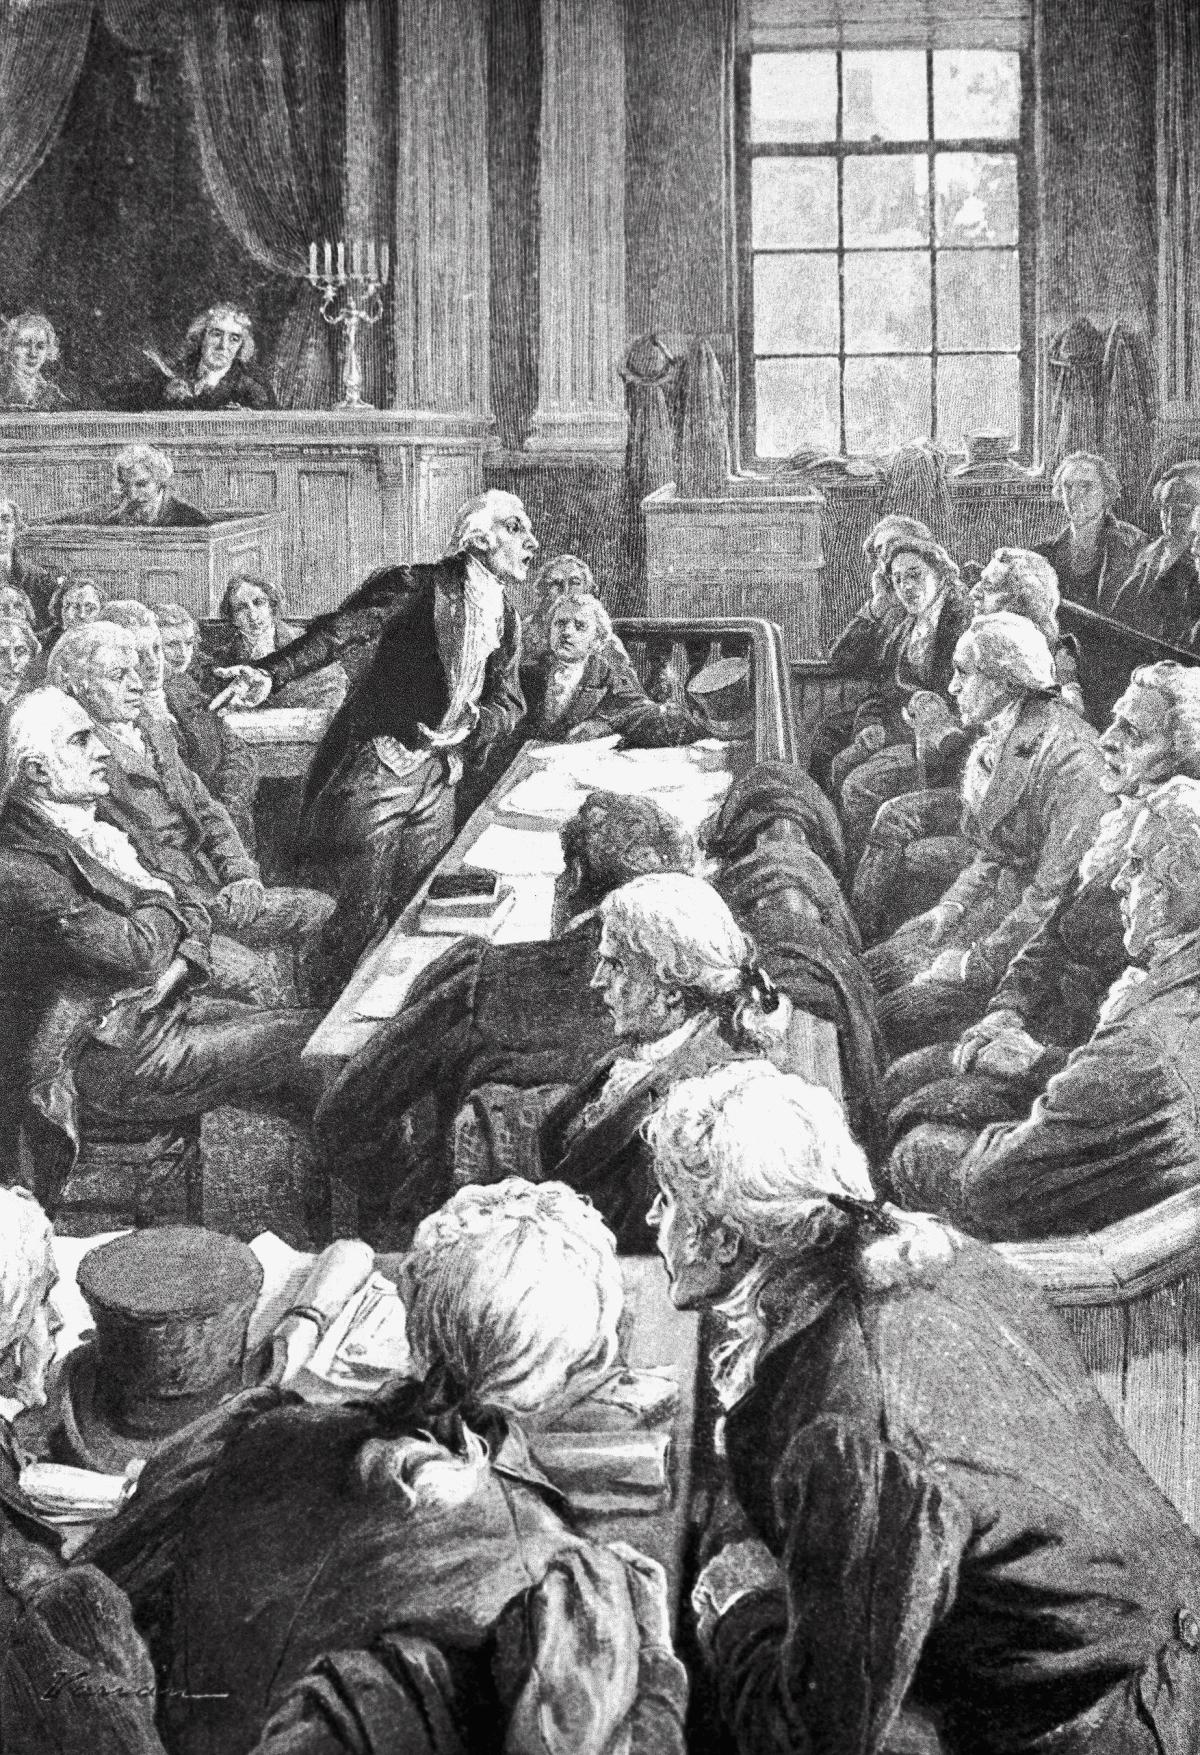 illustration of men arguing in a courtroom